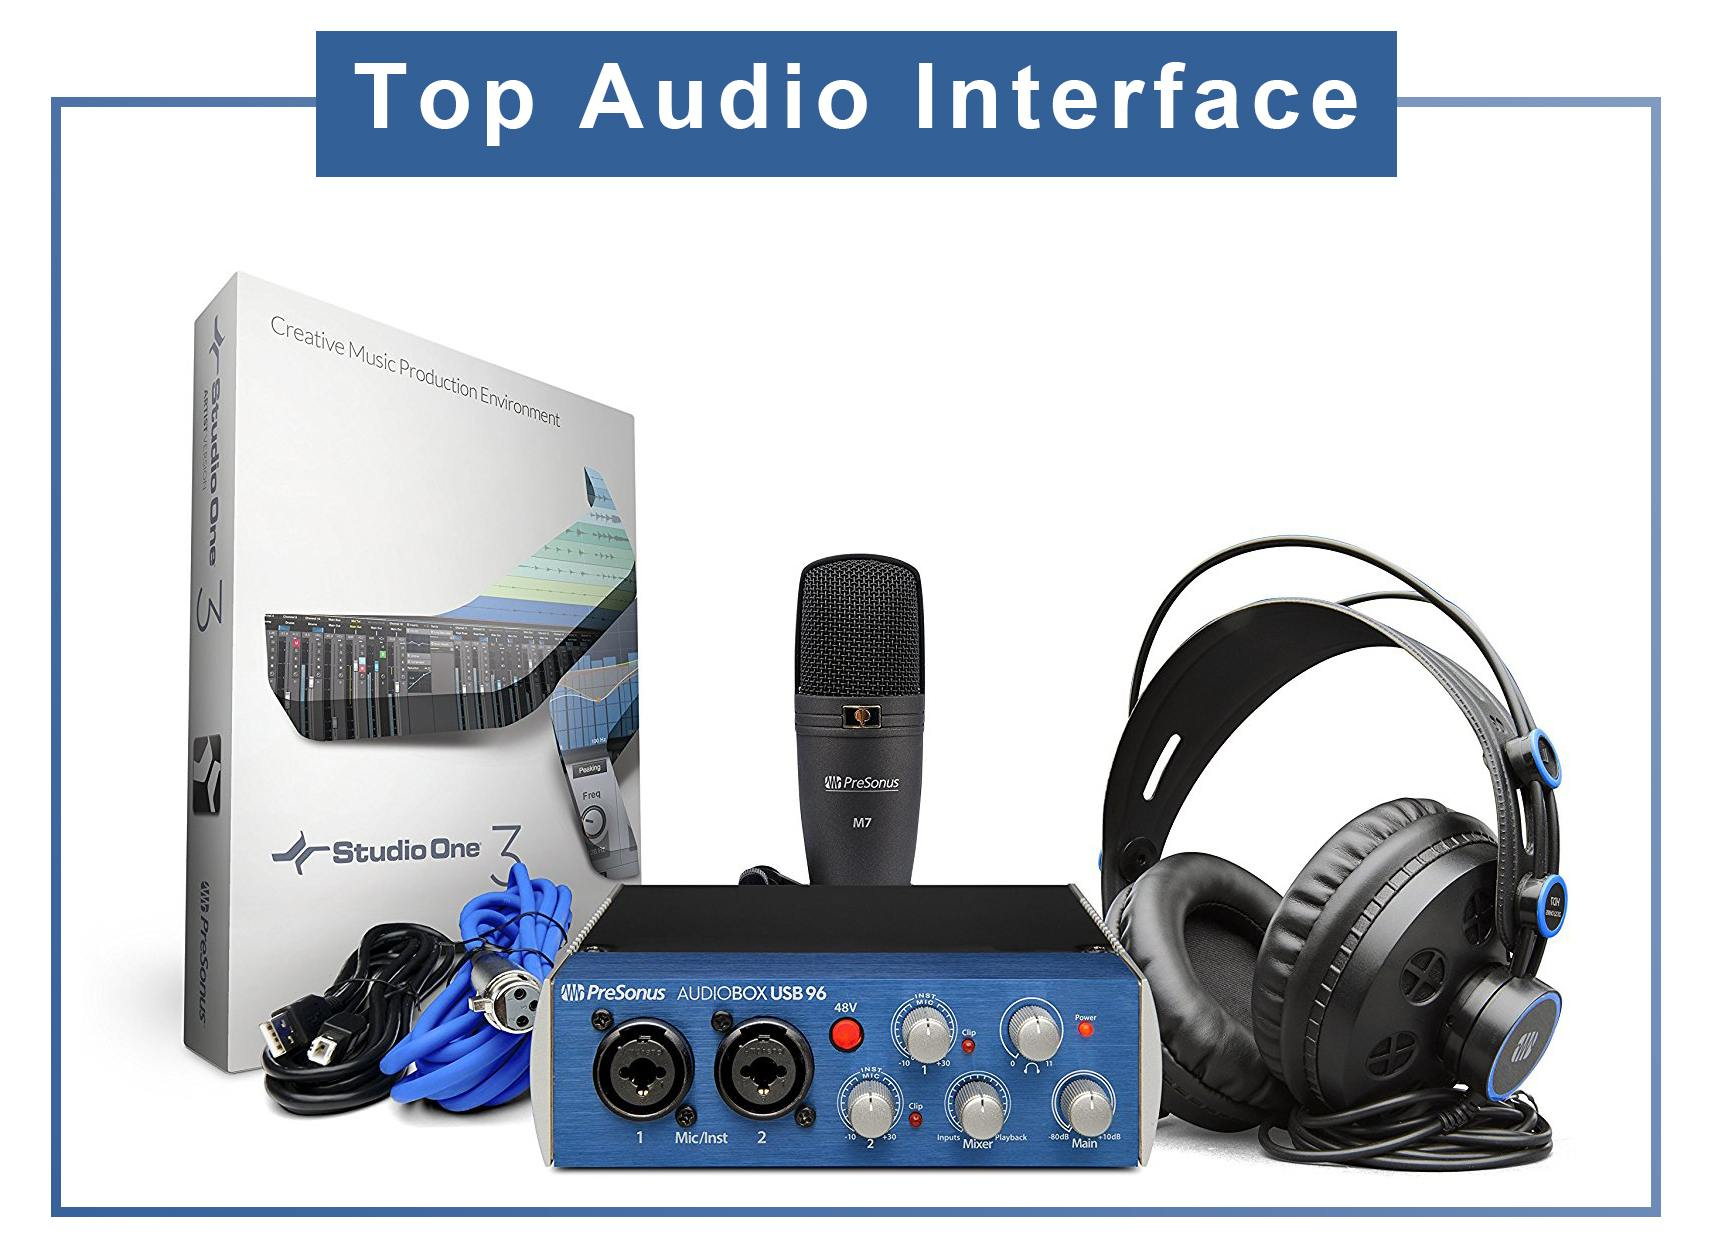 Top Audio Interface